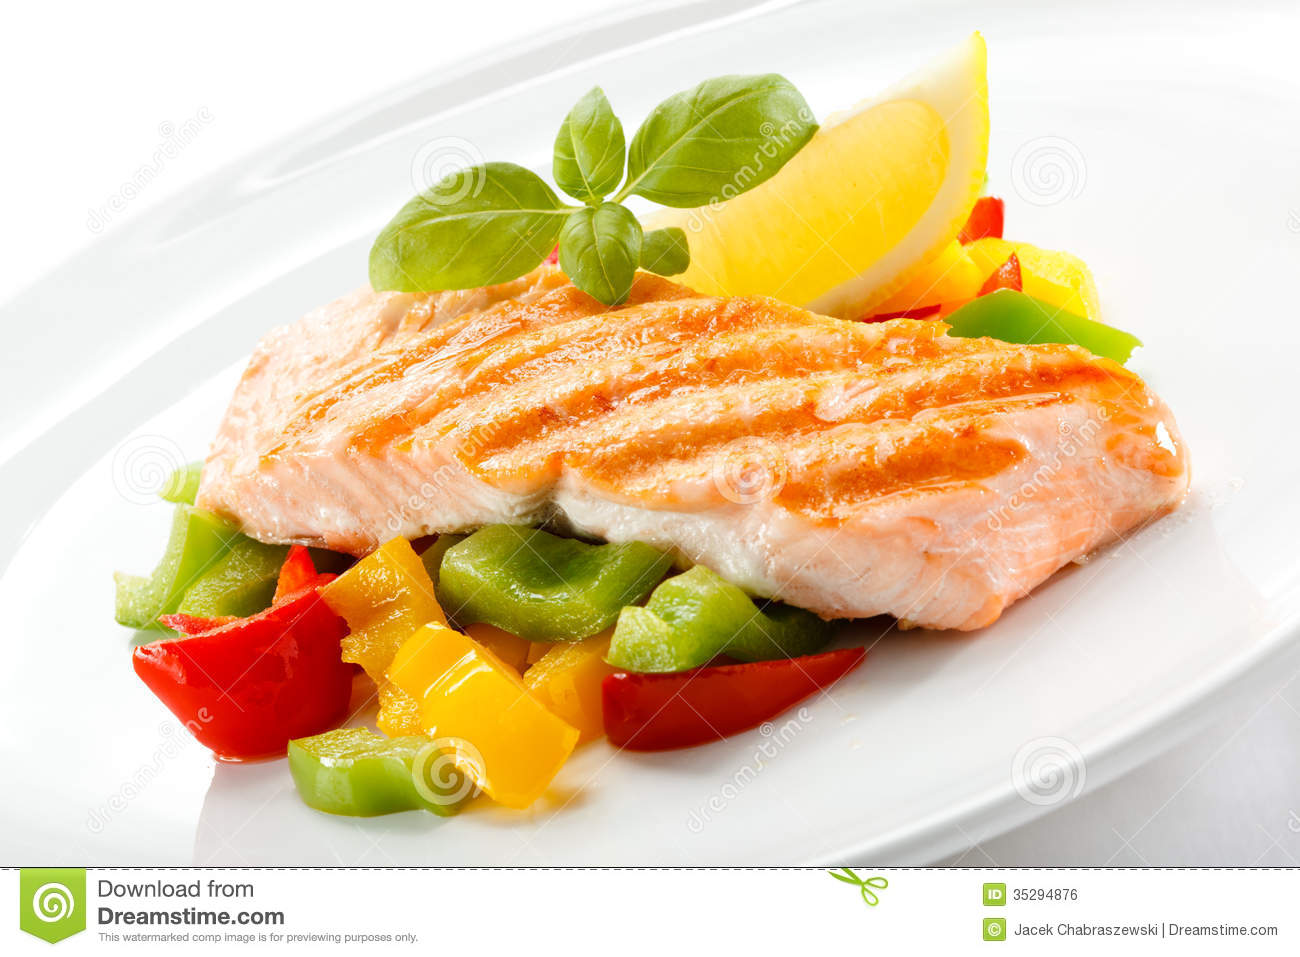 grilled-salmon-vegetables-fish-dish-roas